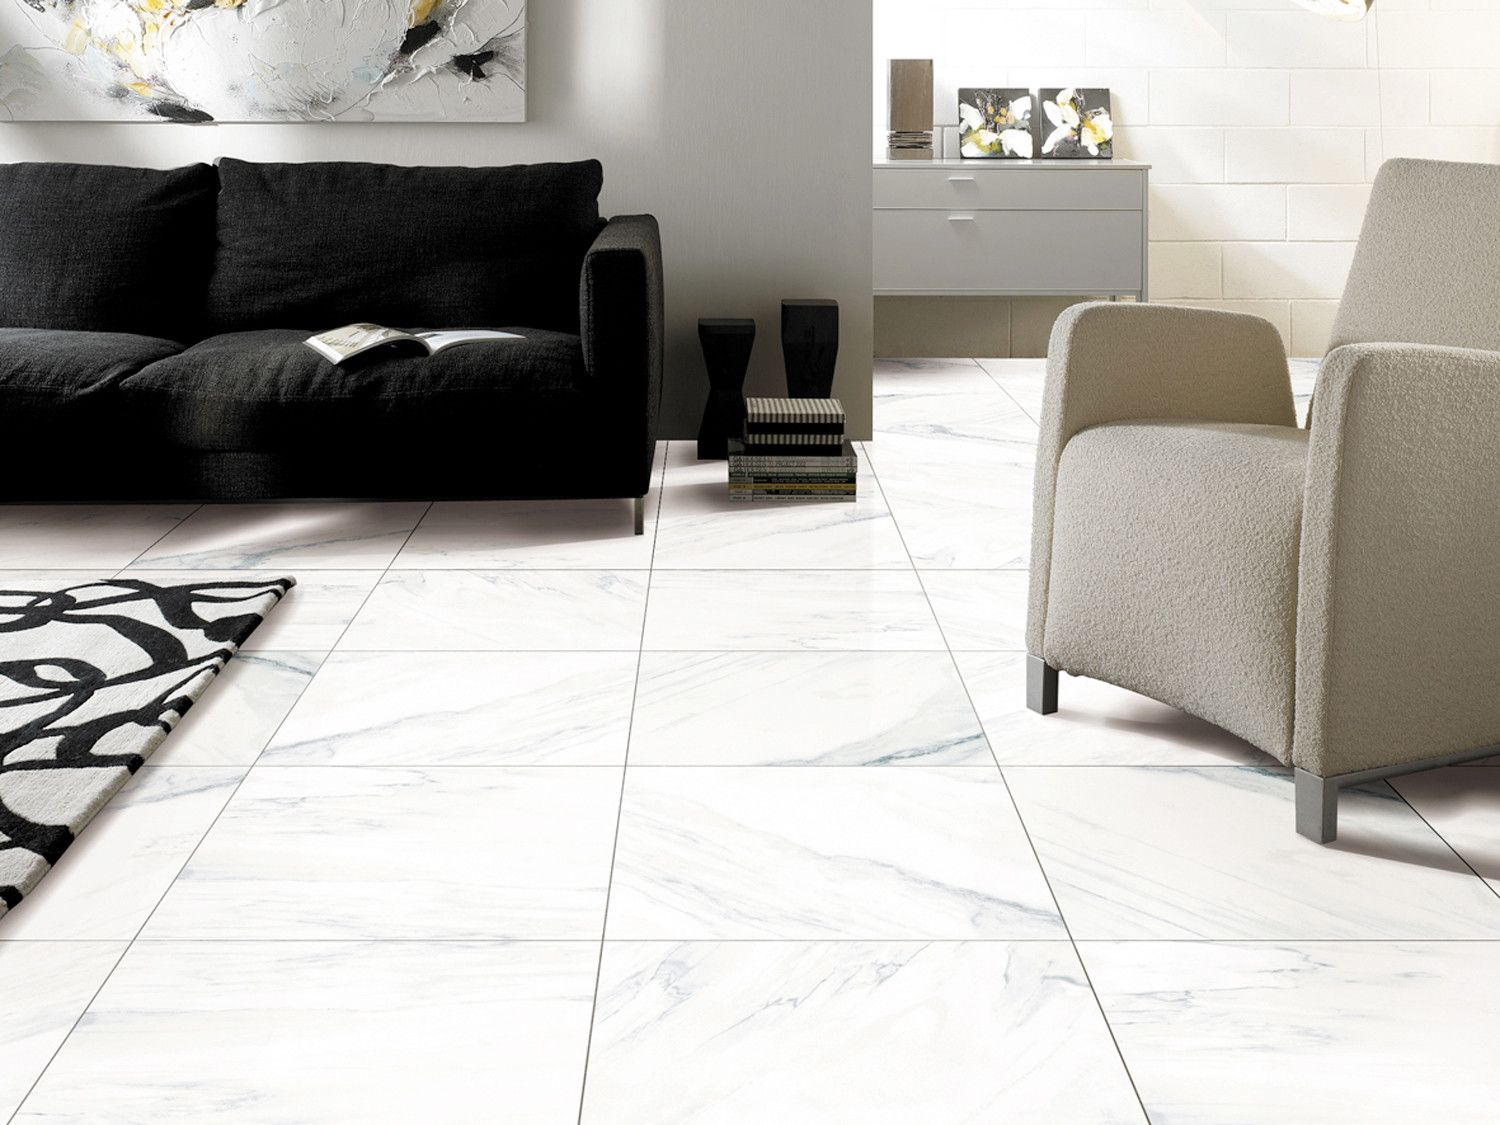 Big Large Floor Tiles From Spain Porcelain In Large Sizes To